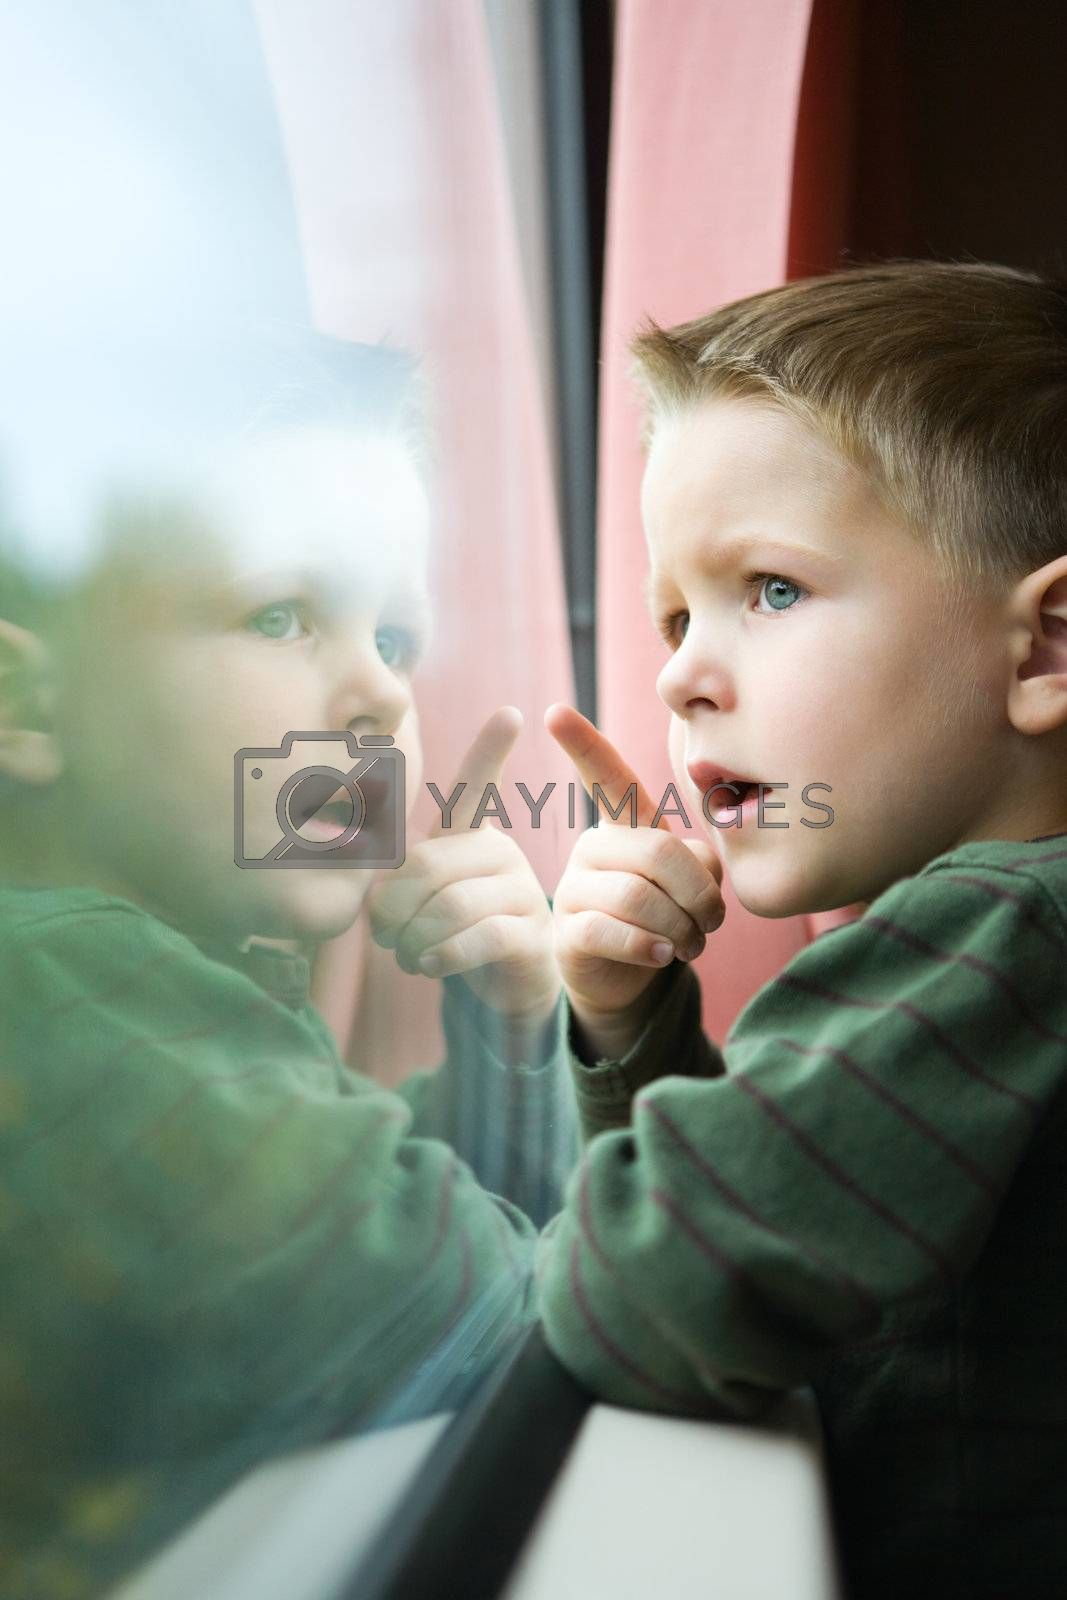 Cute 4-years old boy traveling by train